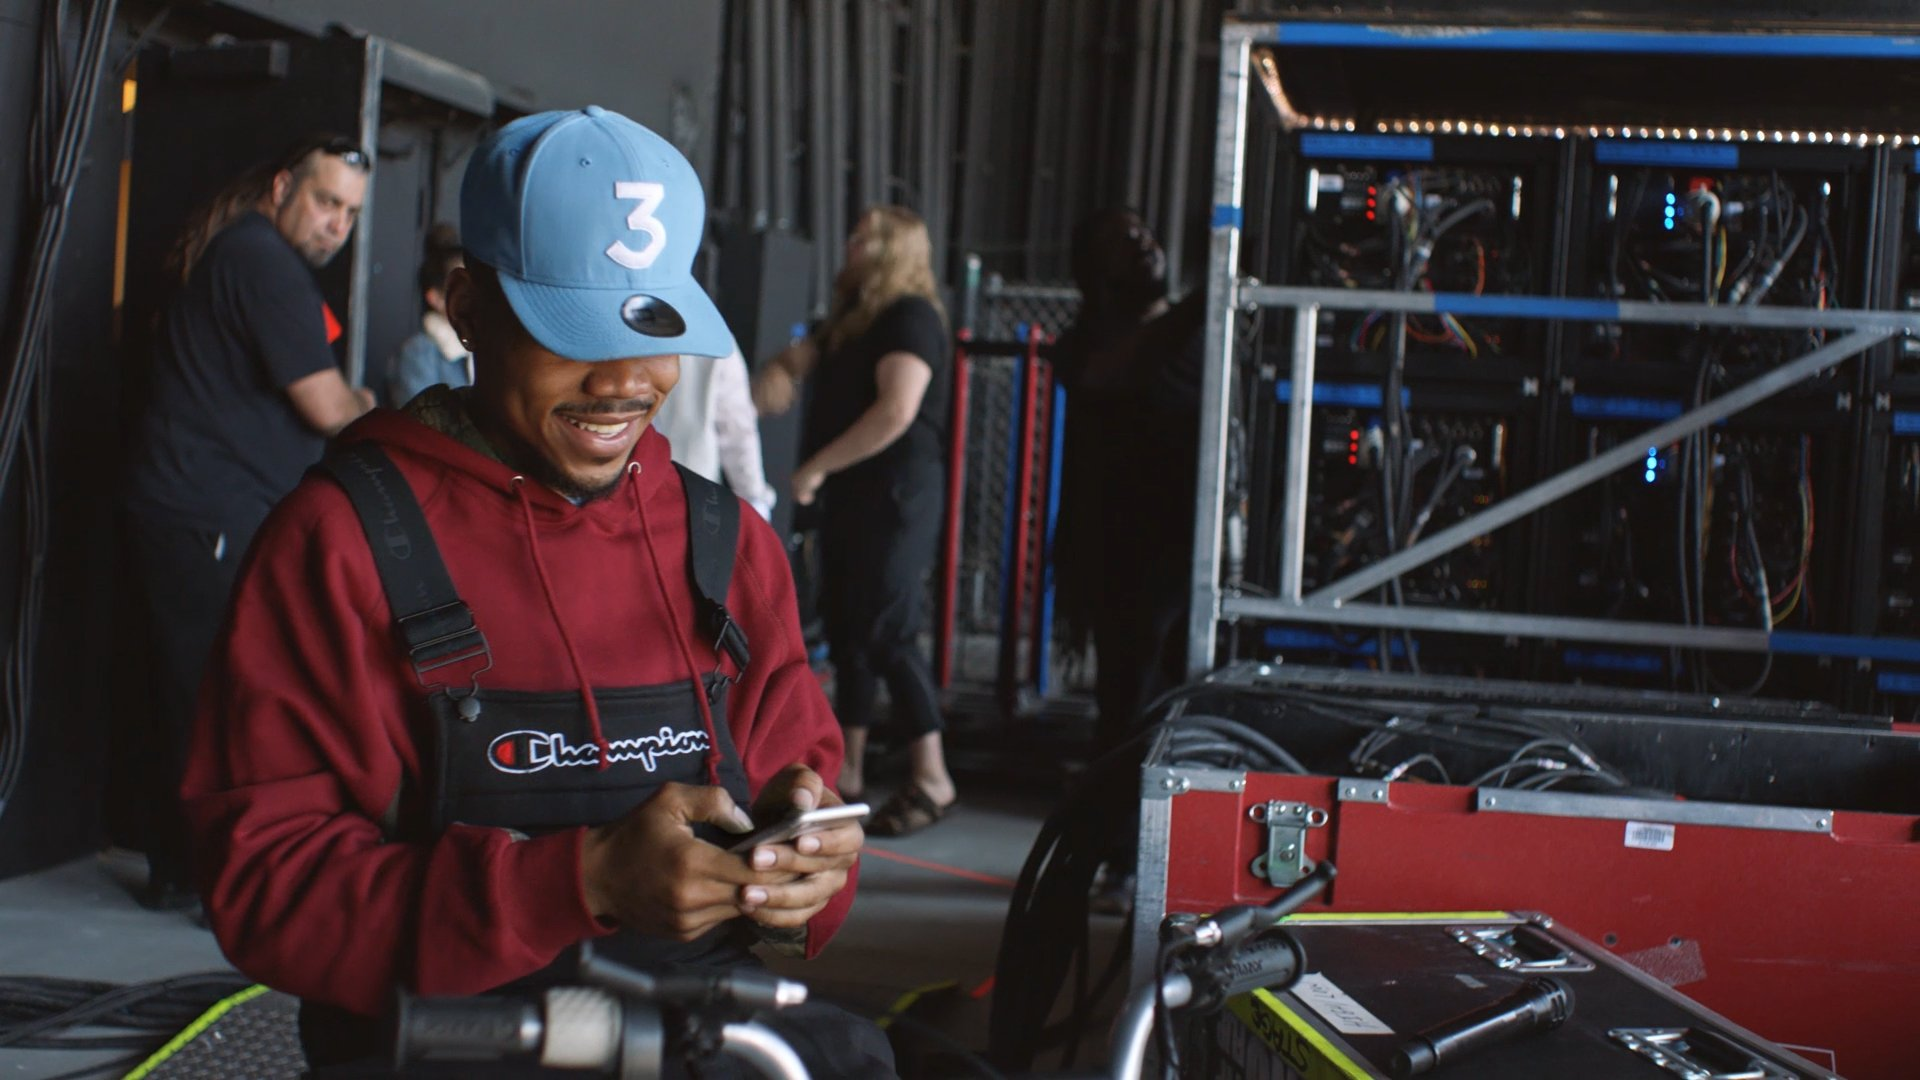 Any requests? Real instruments? No problem.  With @chancetherapper and Twitter, music is happening.   #SeeEverySide https://t.co/1MF5NtIFan